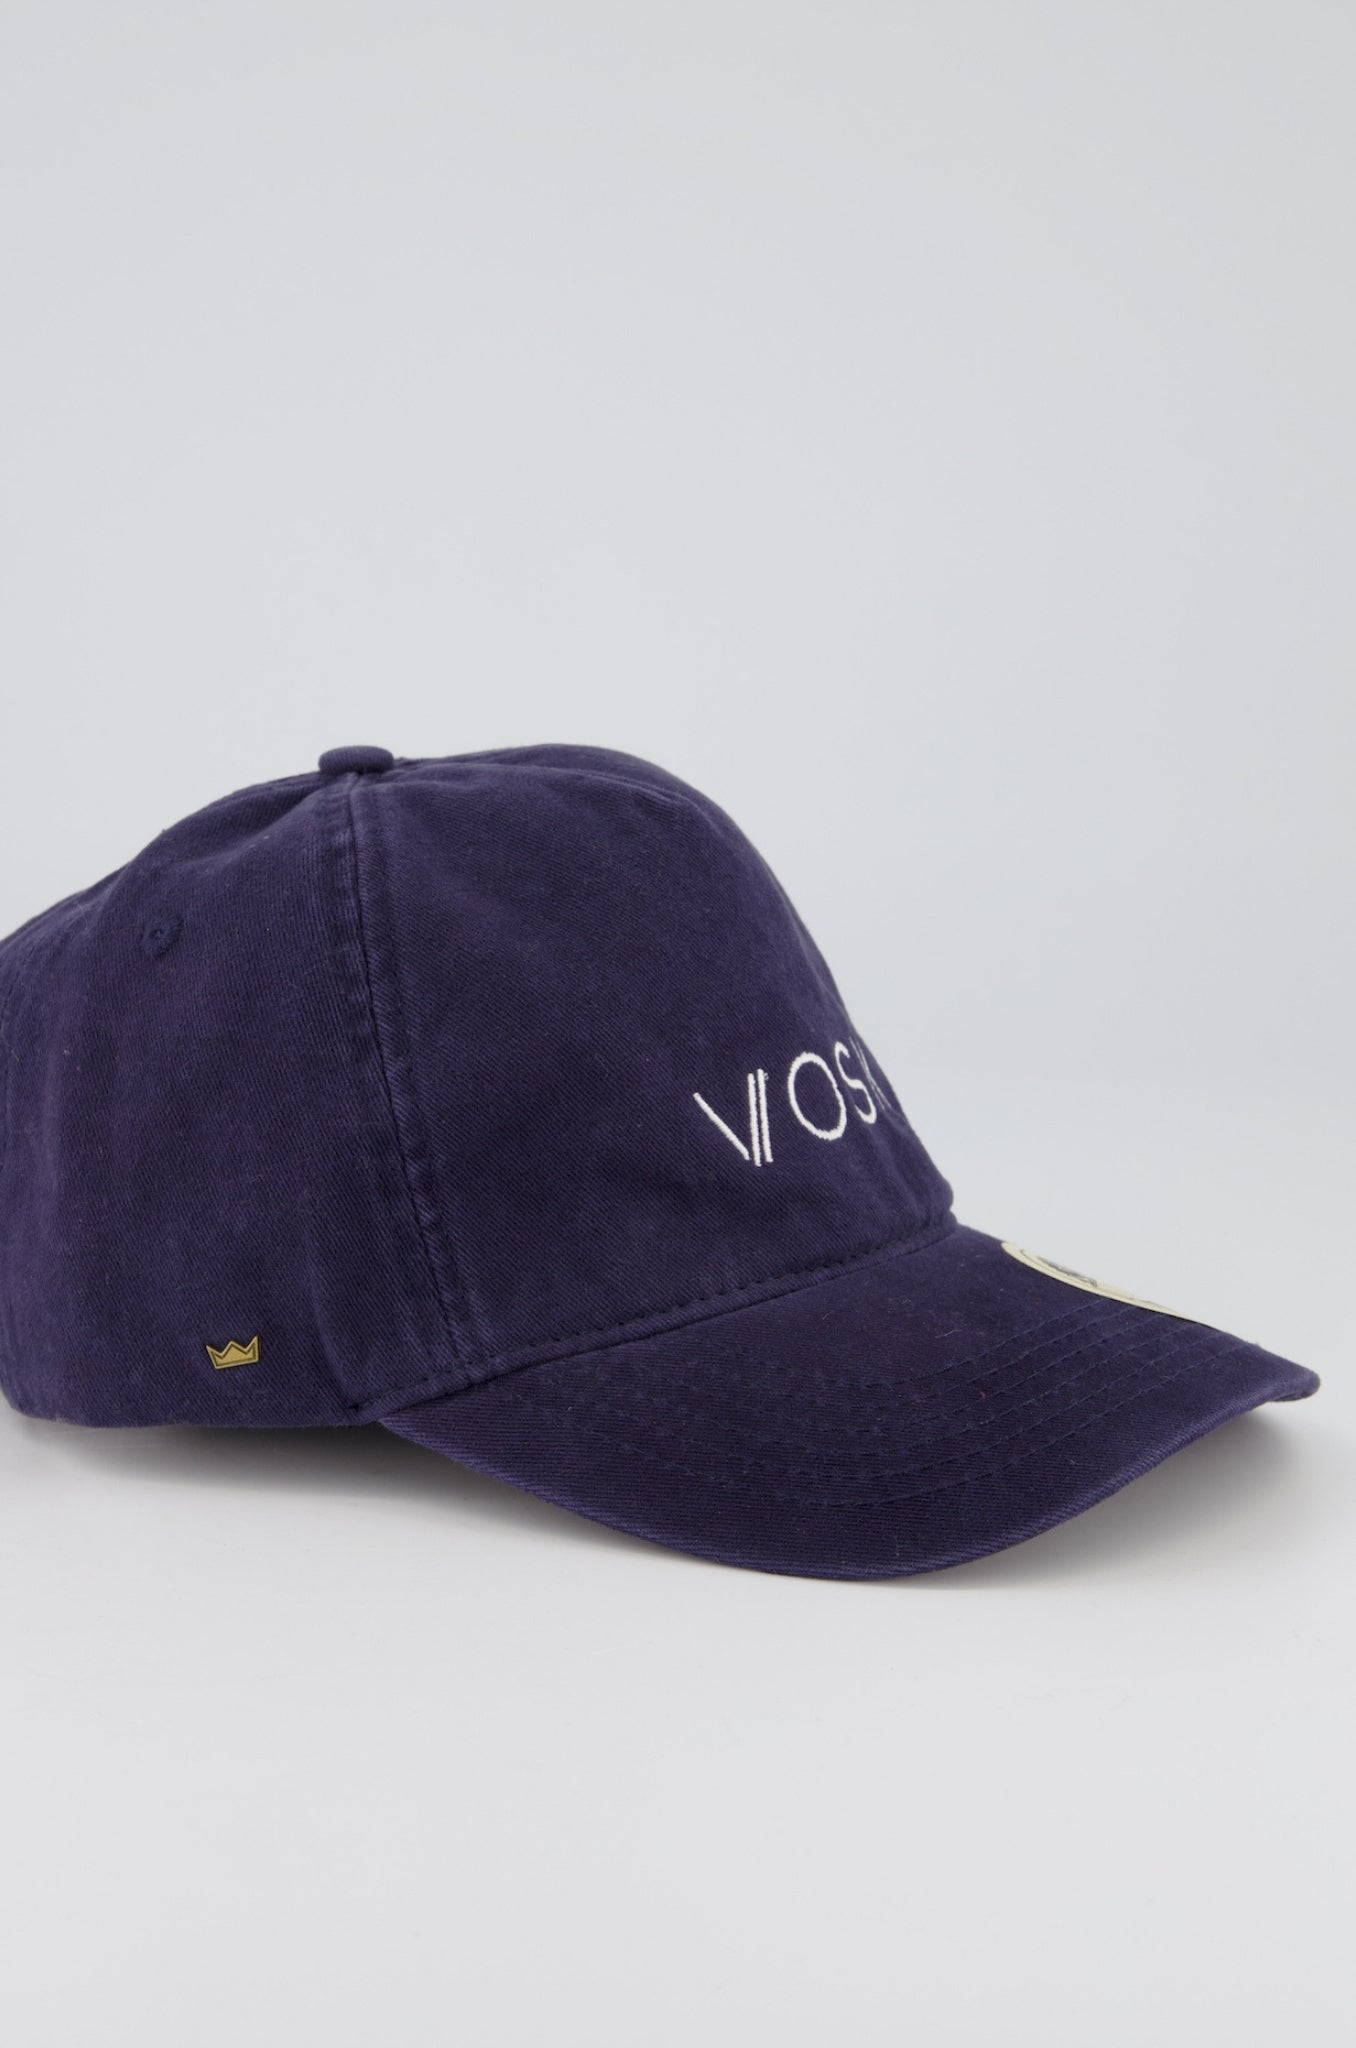 VOSK Logo Vintage 5 Panel Strap-Back Navy